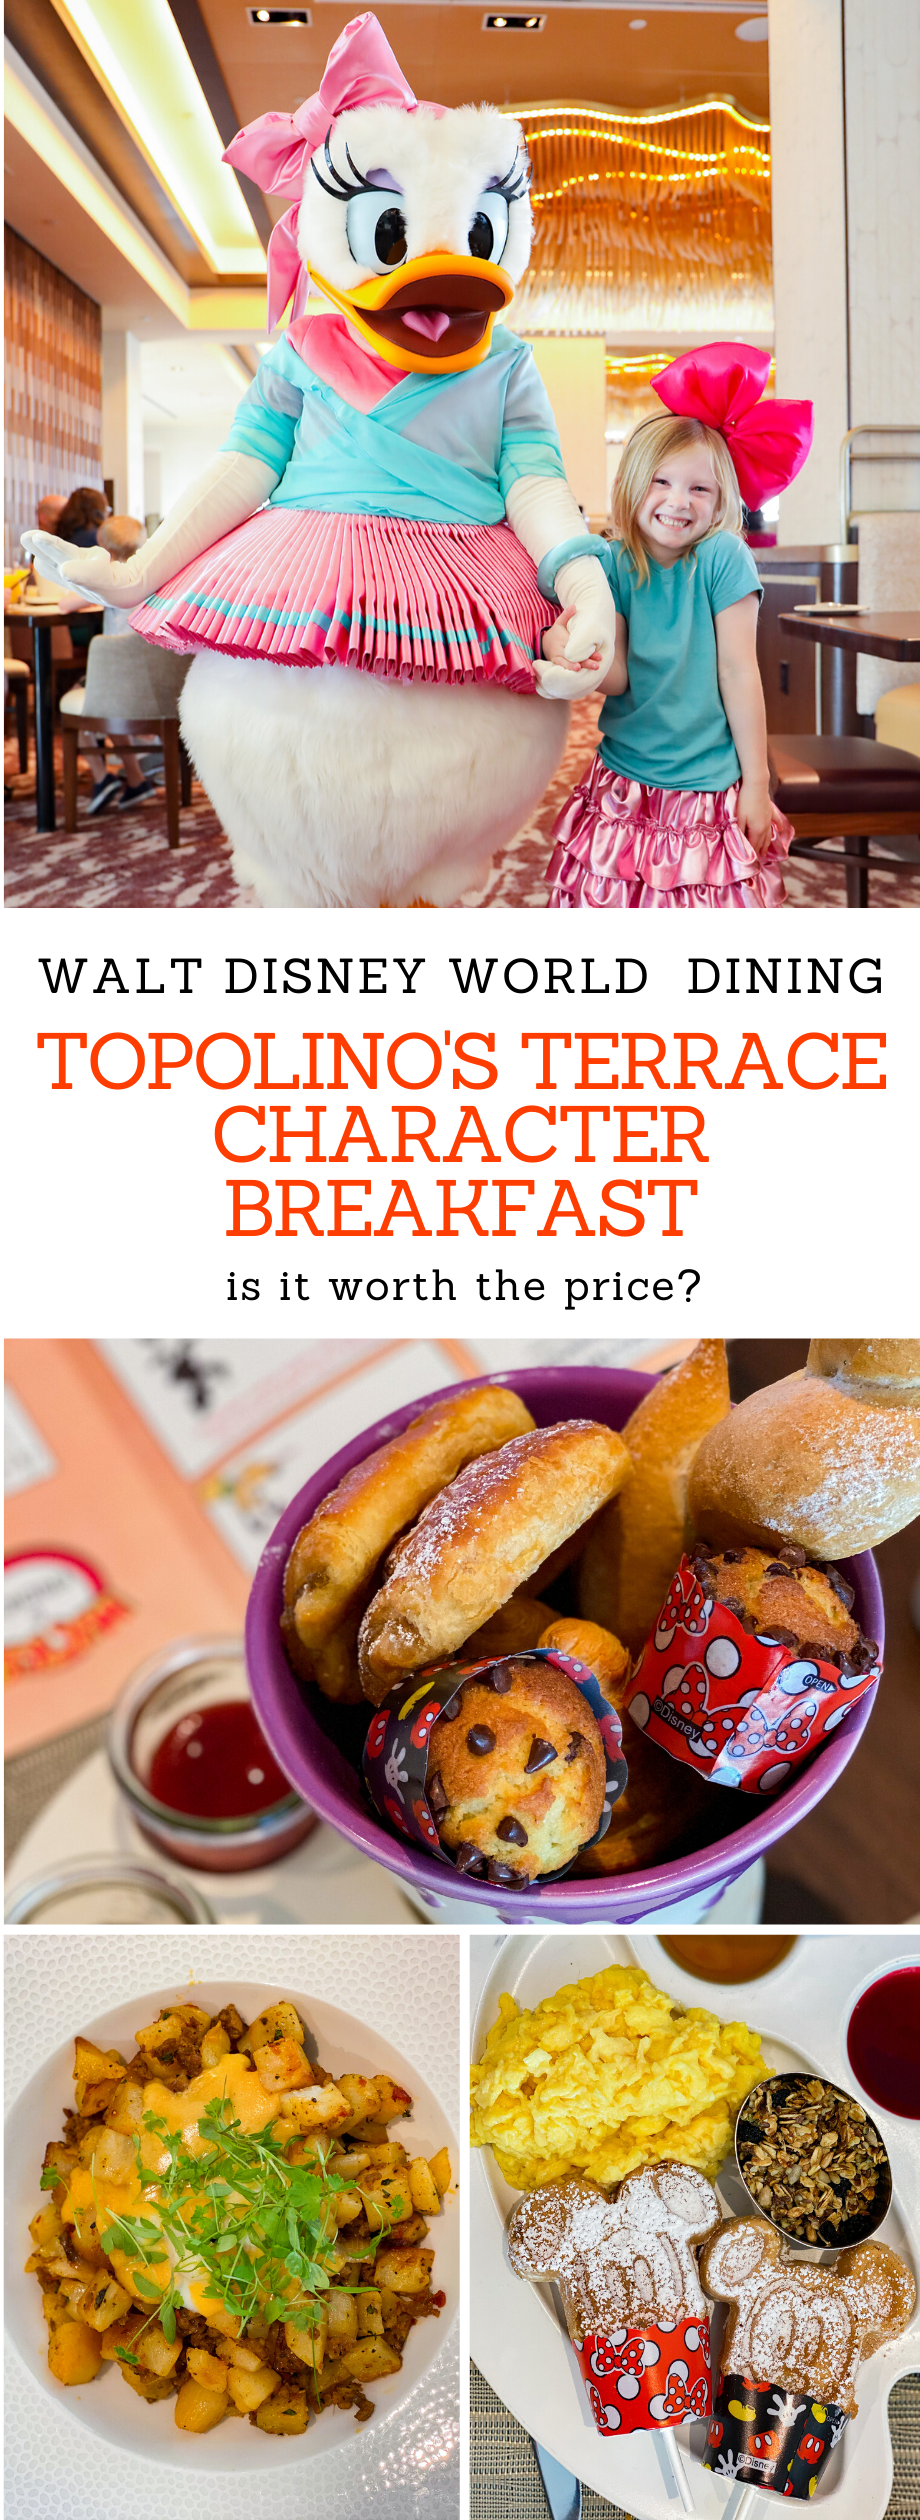 Planning out your Walt Disney World Dining reservations? Topolino's Terrace Character Breakfast is new, and this review shares all the details about the menu, character interactions and whether it's worth the price tag!